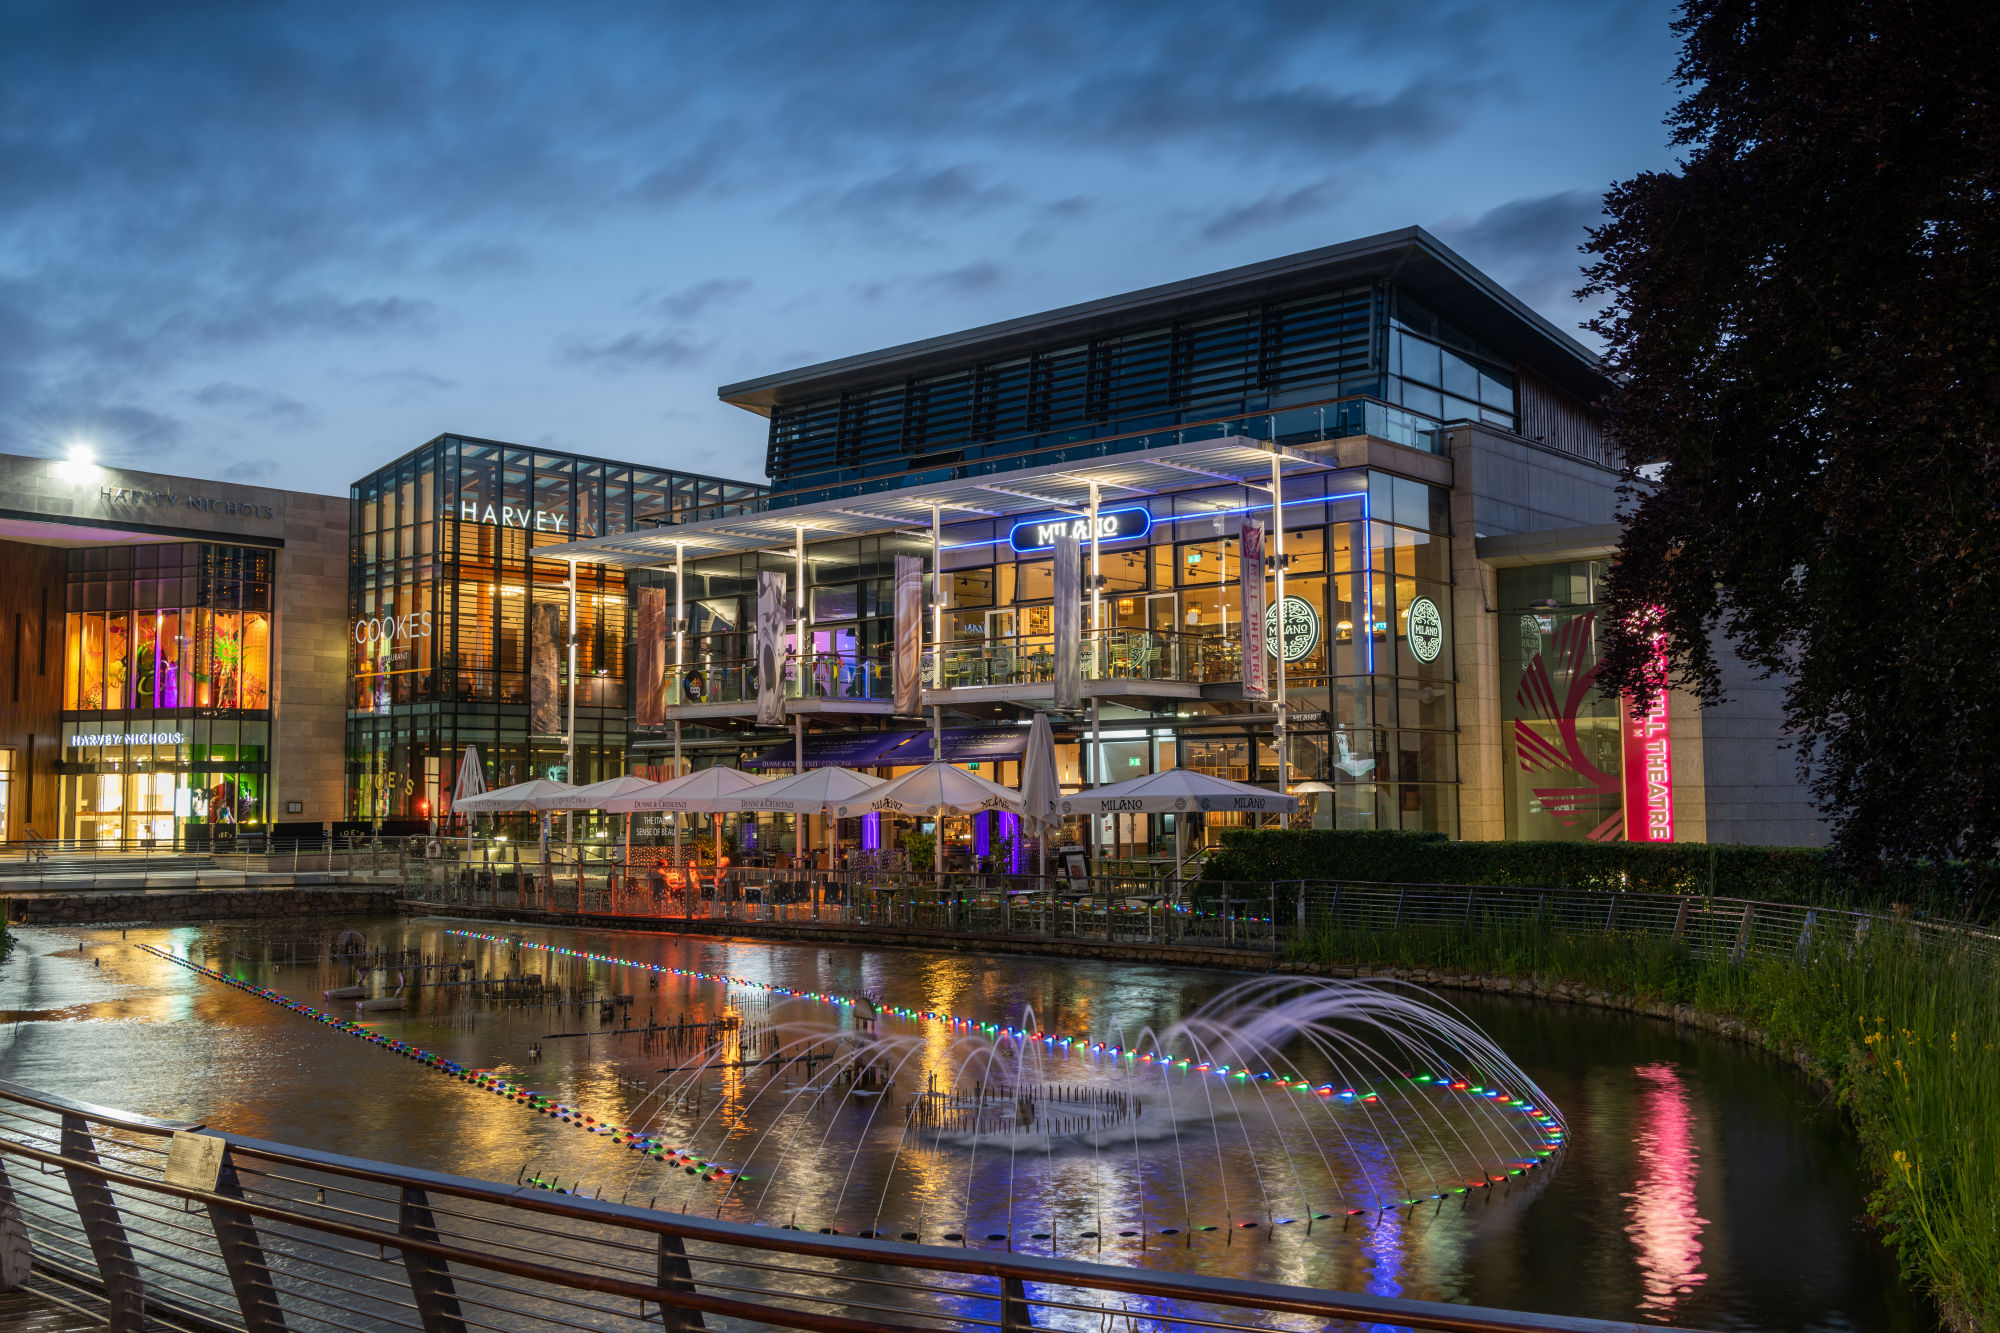 Make a move to Dundrum: well-connected suburb with a lot of